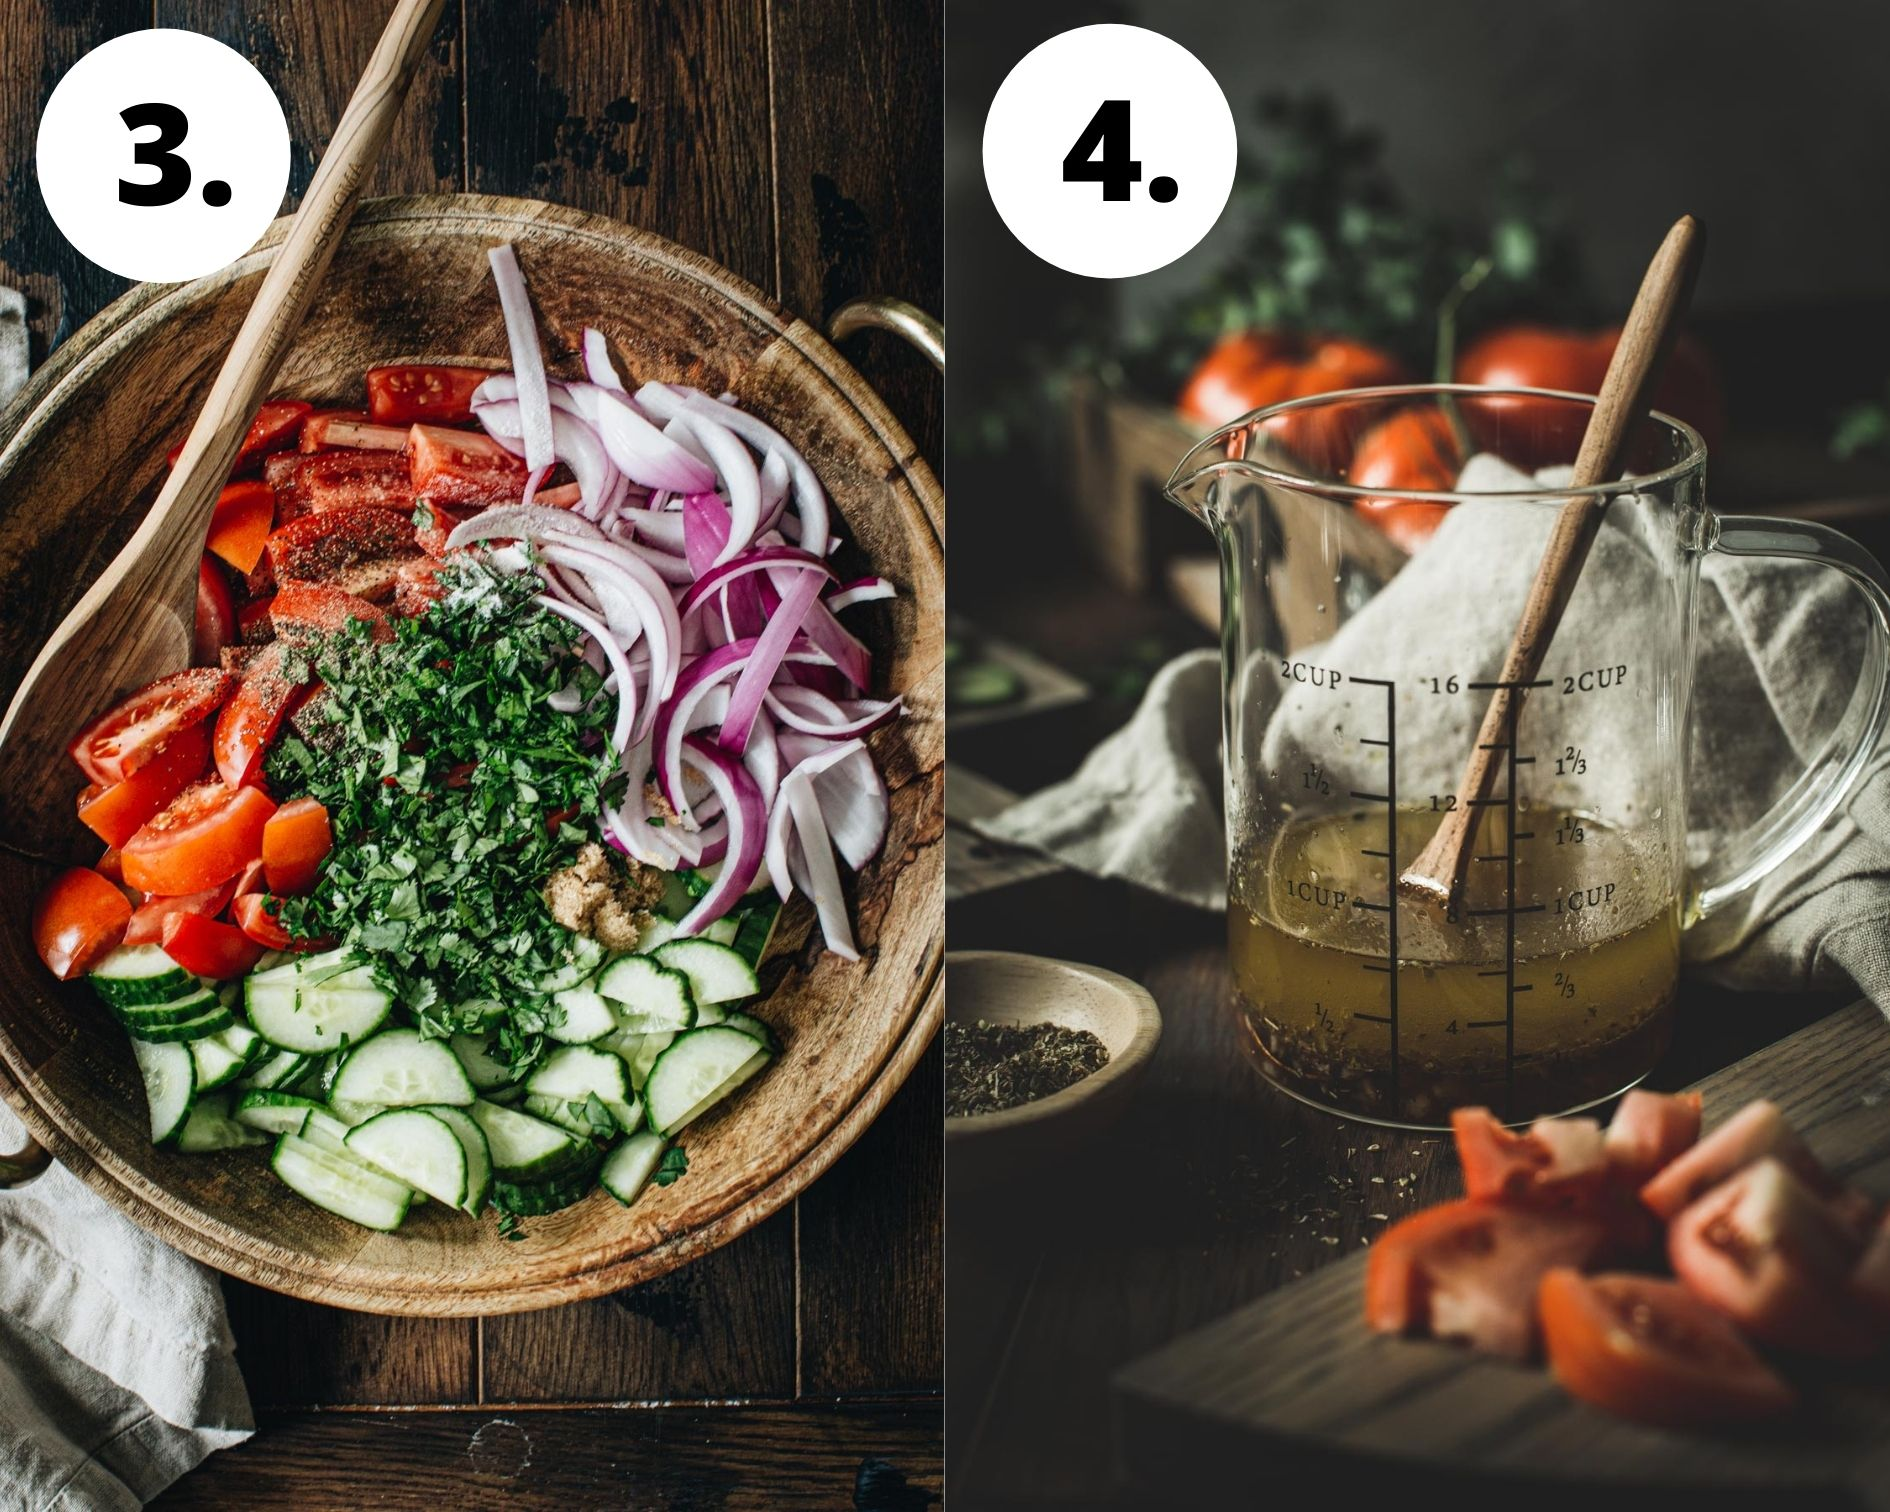 Cucumber, onion, and tomato salad process steps 3 and 4.